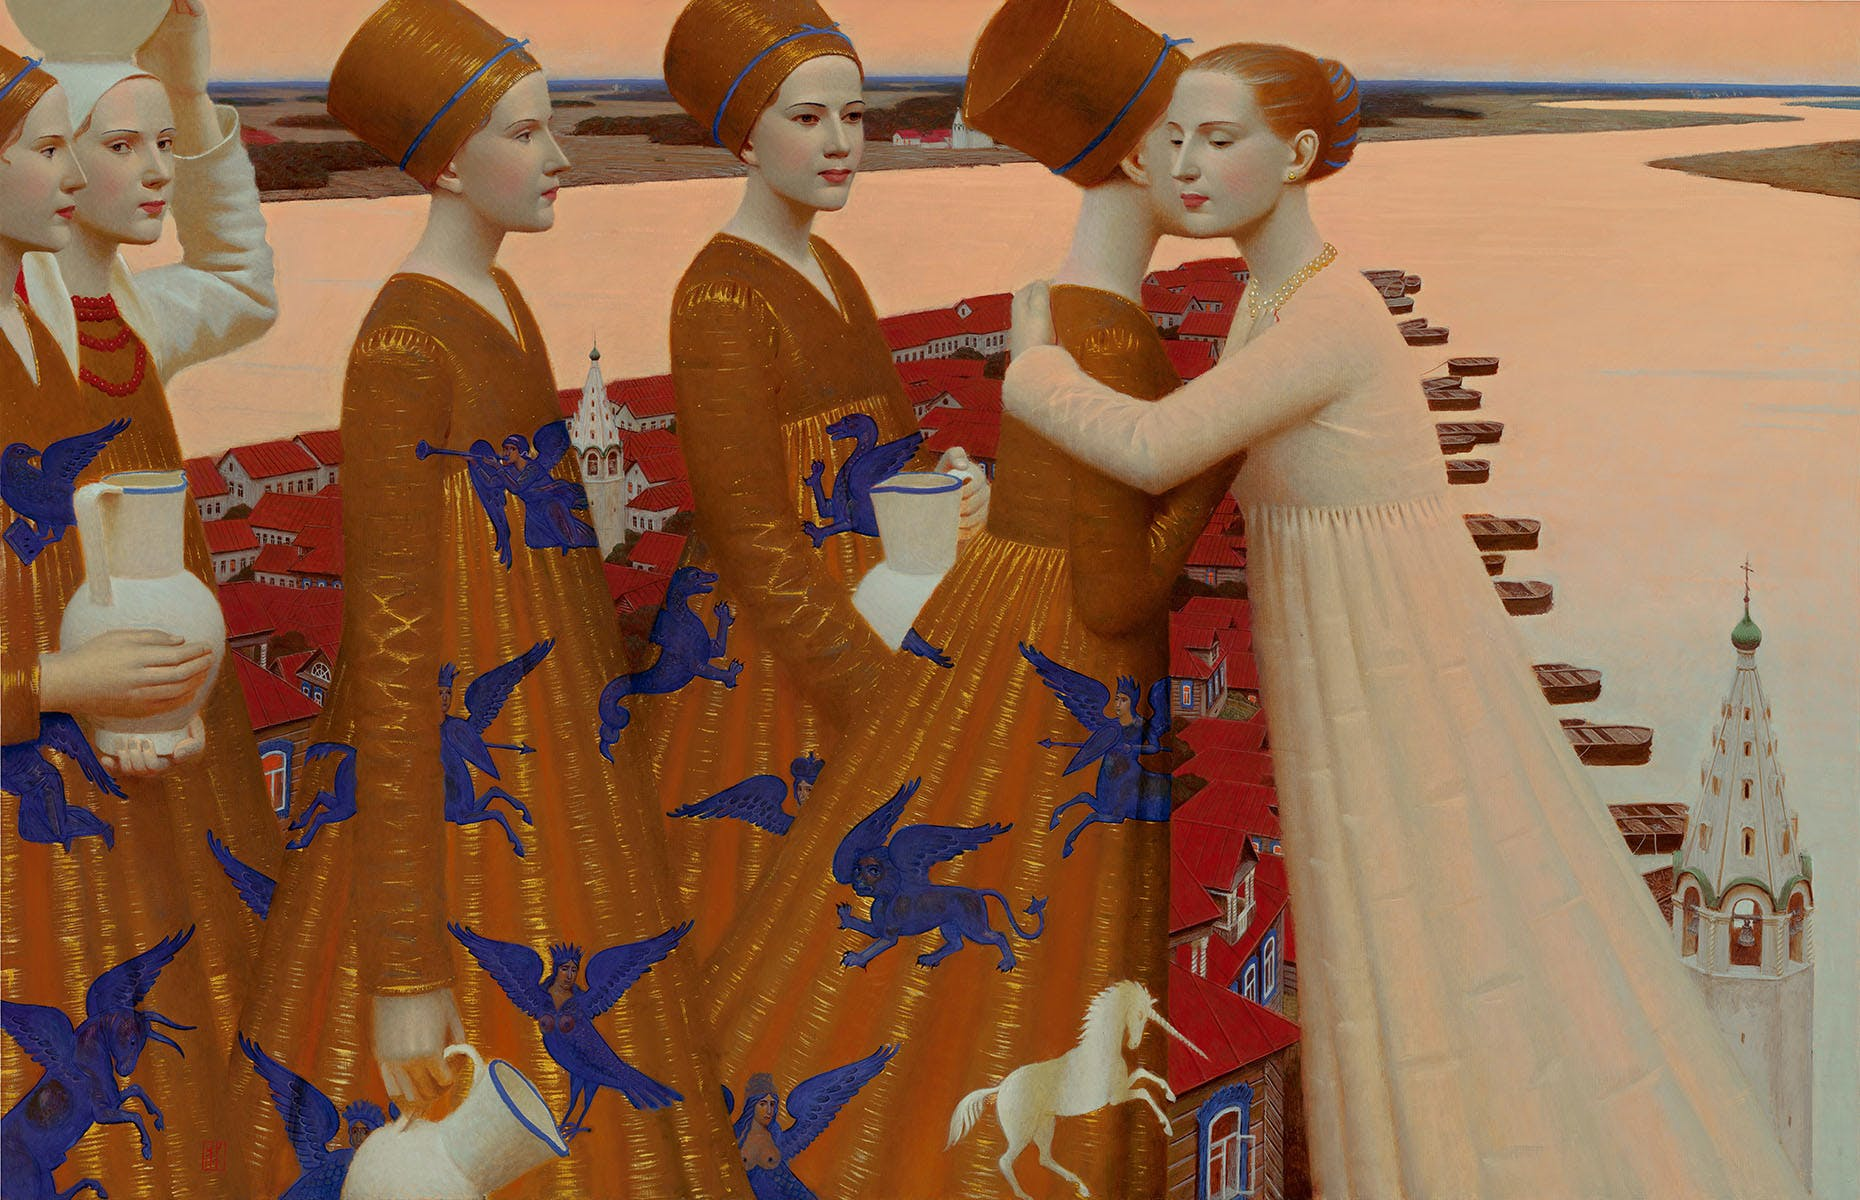 ANDREY REMNEV: ICONOGRAPHY AND RUSSIAN CONSTRUCTIVISM